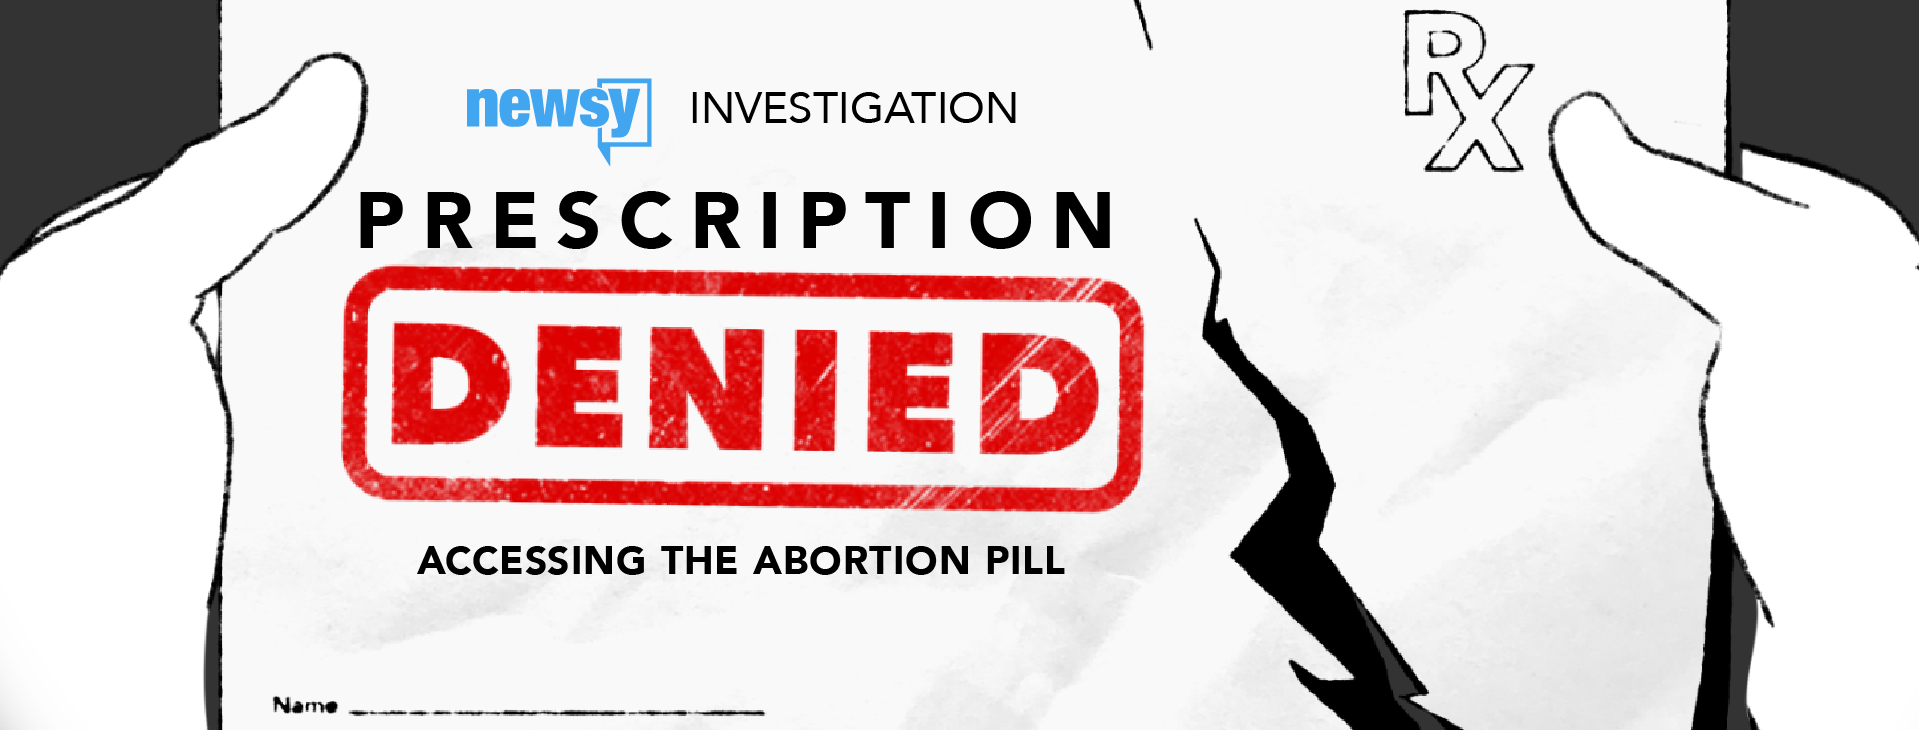 Prescription Denied: Accessing the Abortion Pill